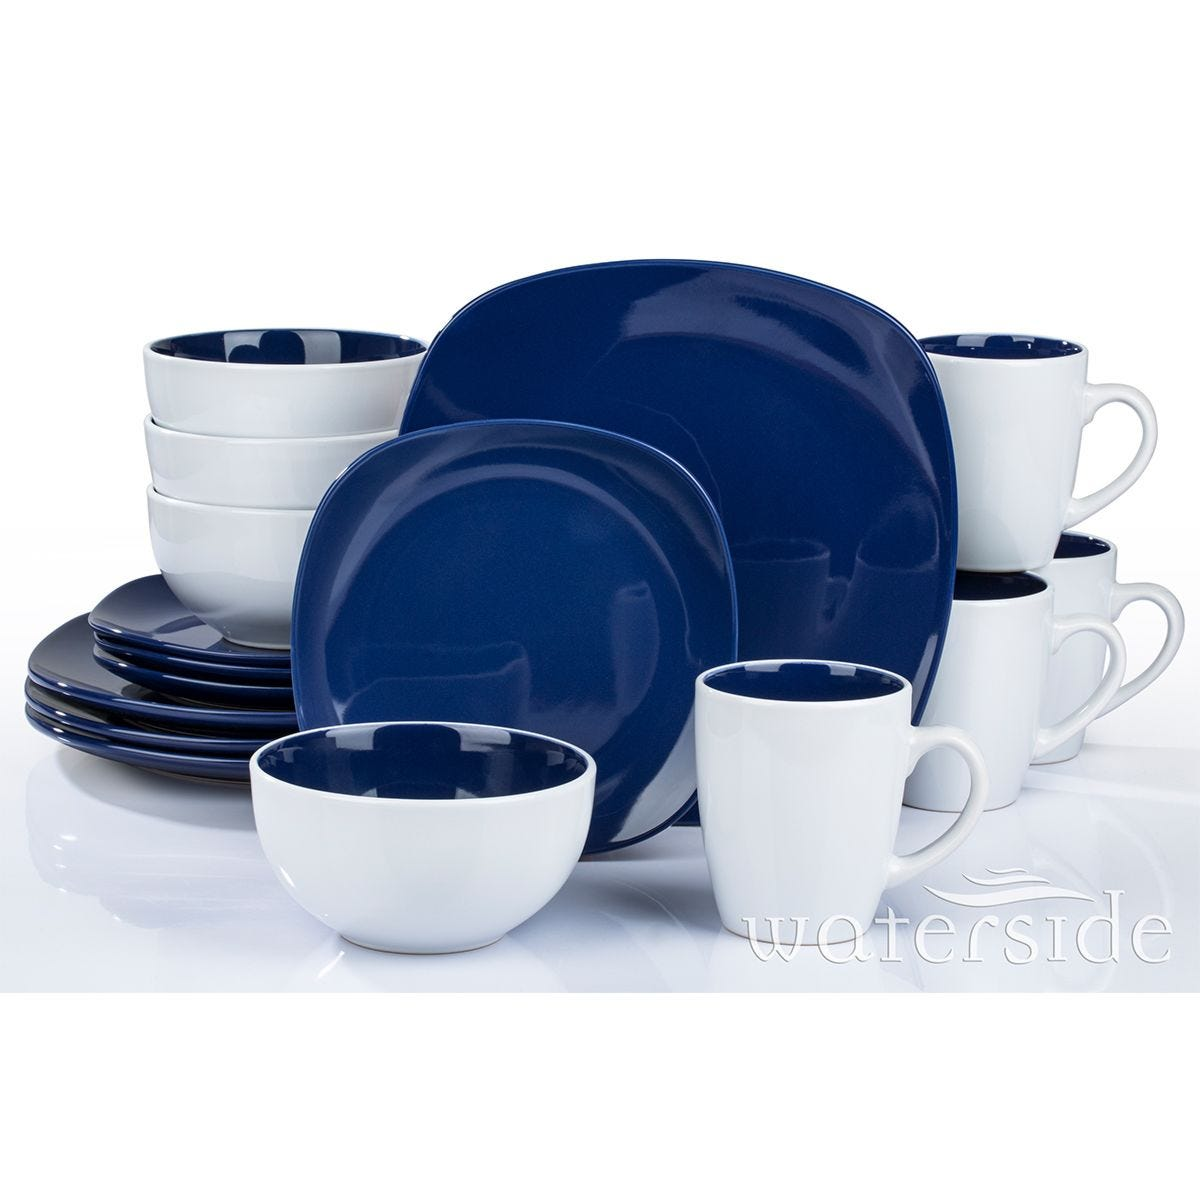 The Waterside 16 Piece Blue Square Dinner Set